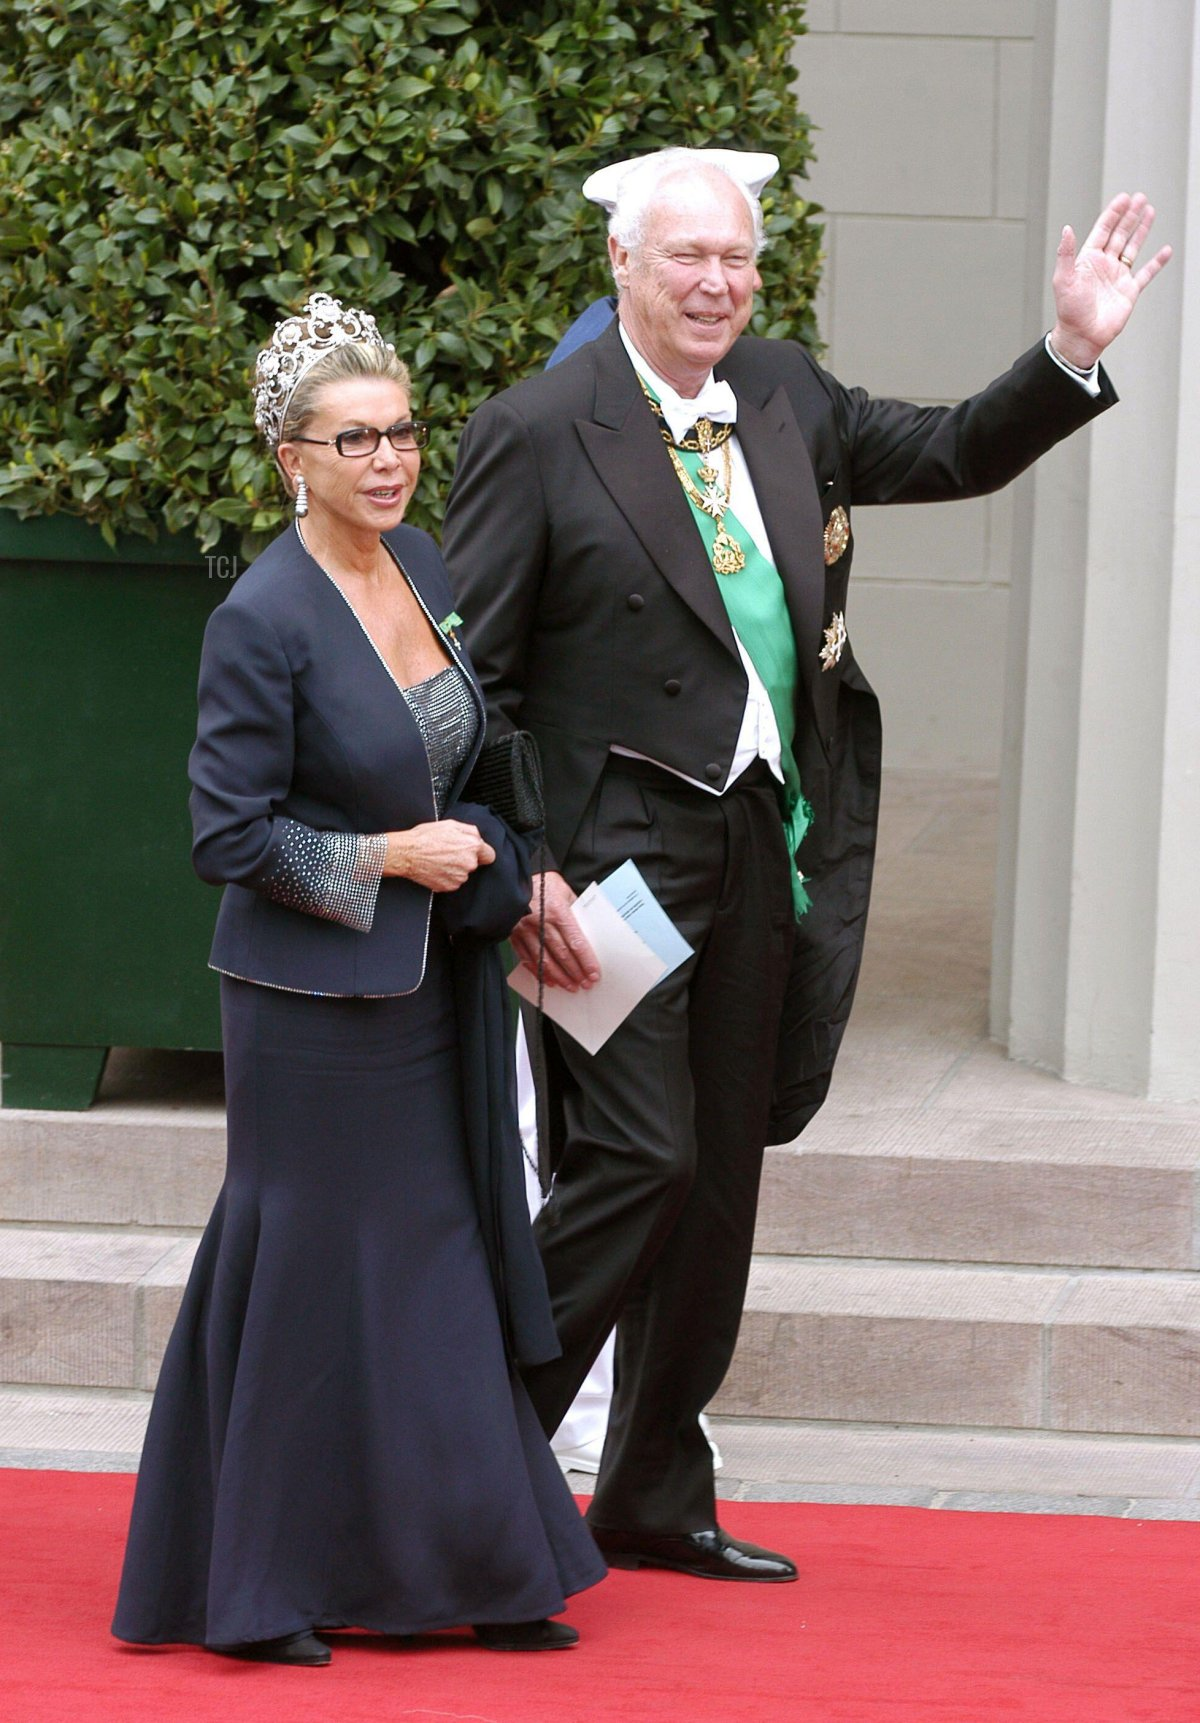 Victor Emmanuel of Savoy and wife Marina Doria arrive at the cathedral of Copenhagen for the wedding of Crown Prince Frederik of Denmark and Mary Elisabeth Donaldson on May 14, 2004